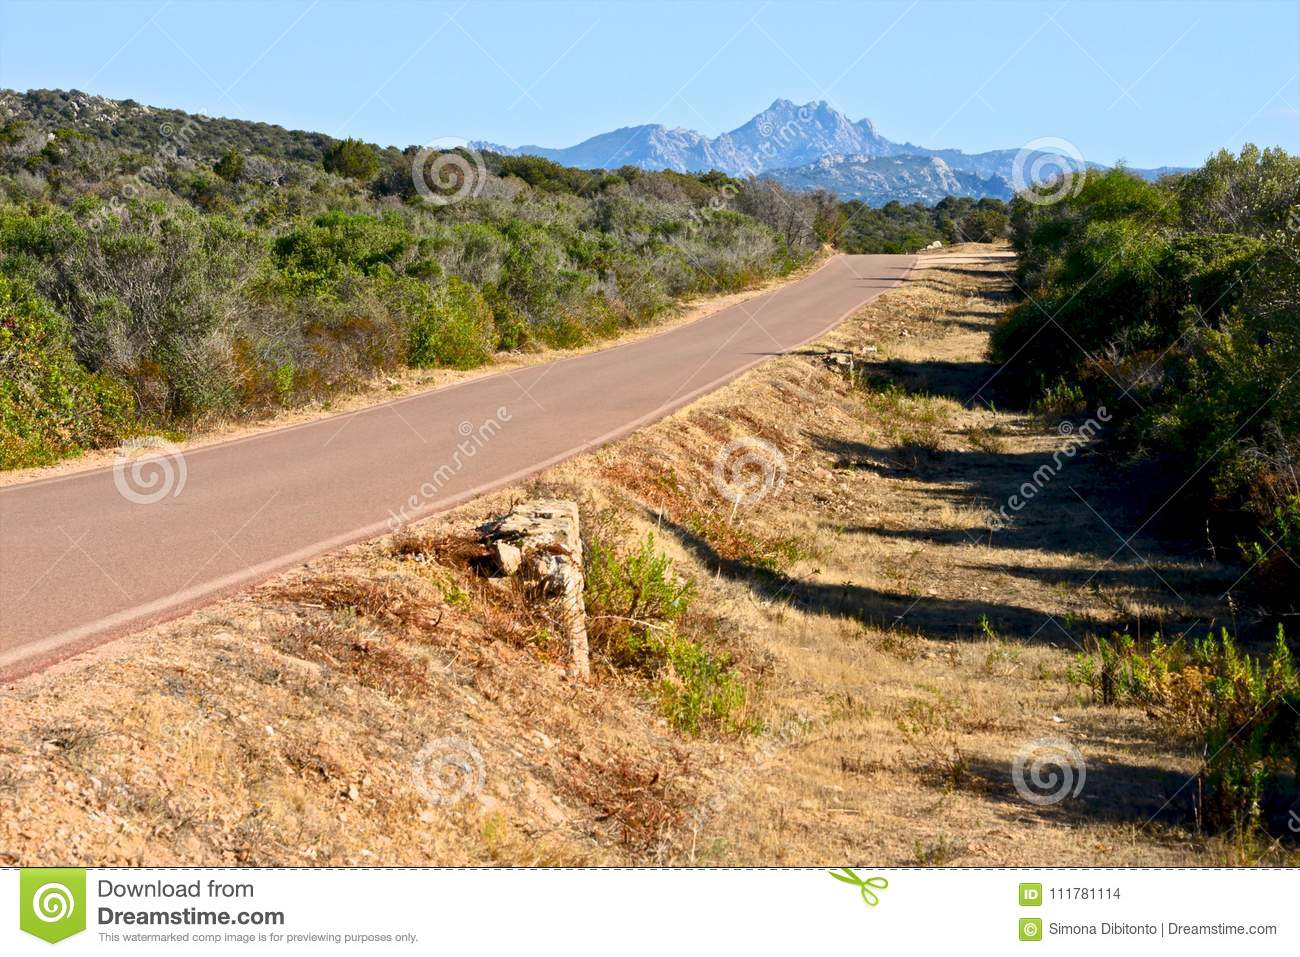 Wild nature landscape with a road